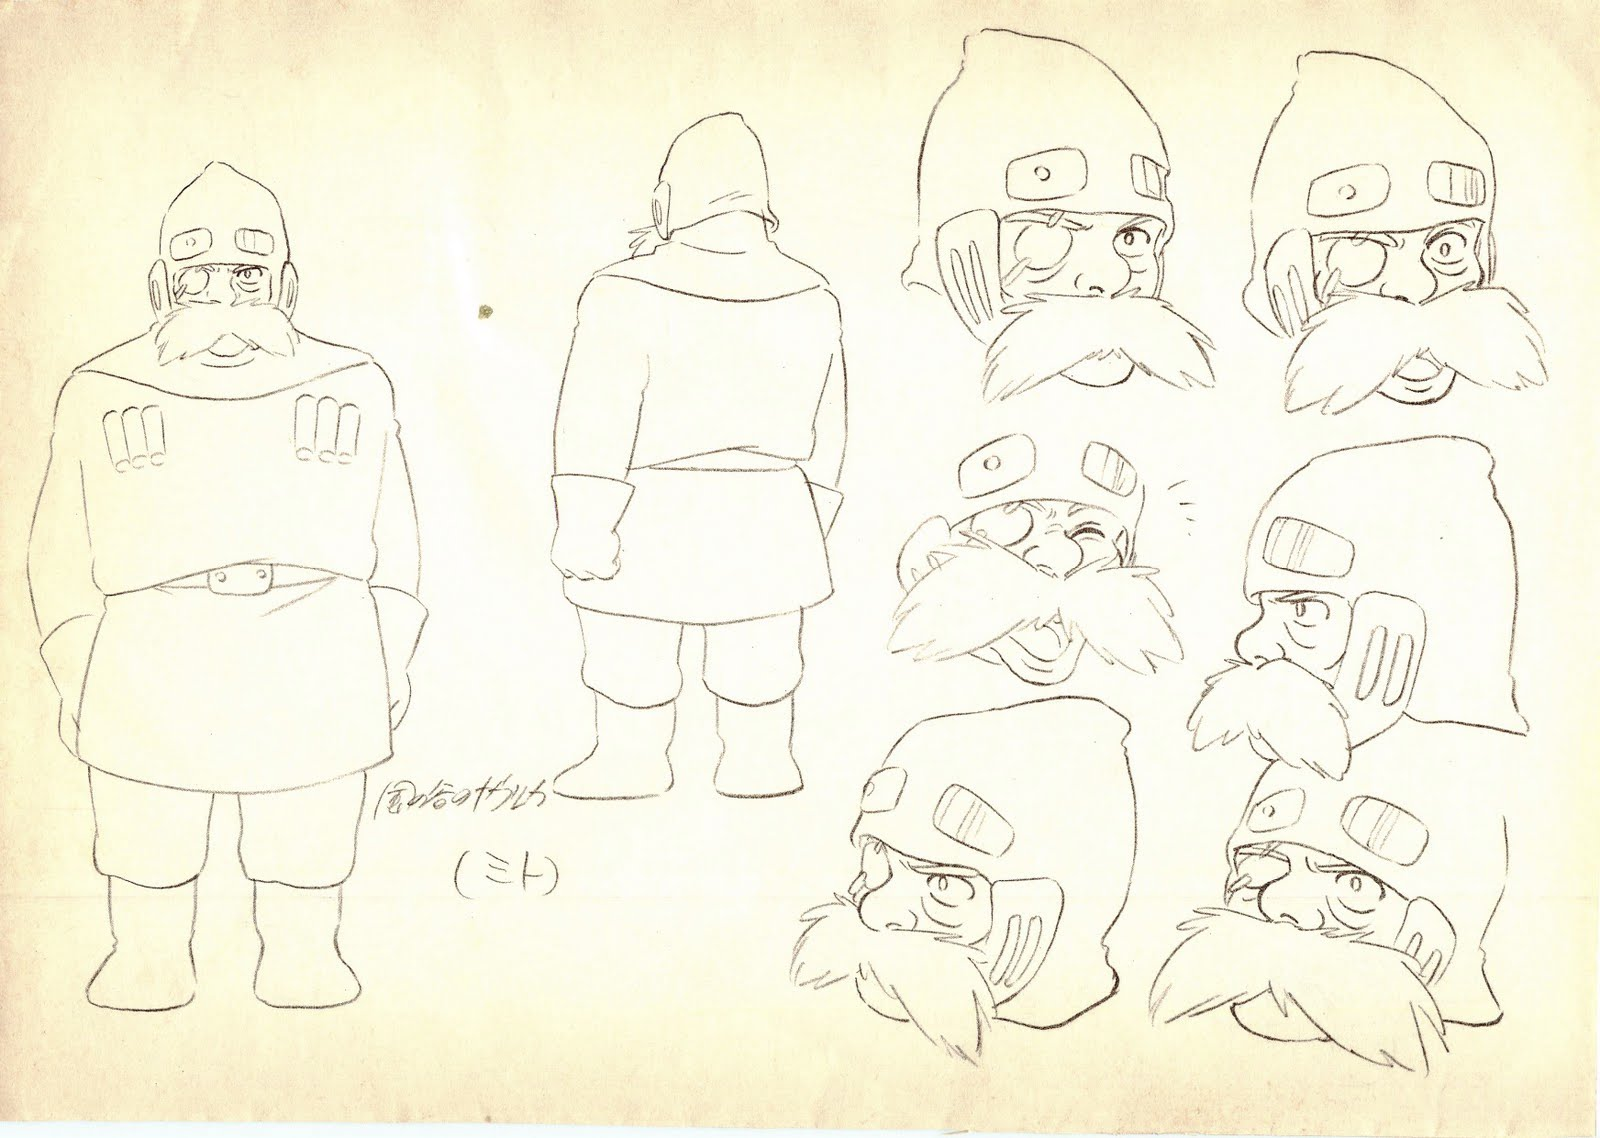 nausicaa_of_the_valley_of_the_wind_concept_art_character_08.jpg